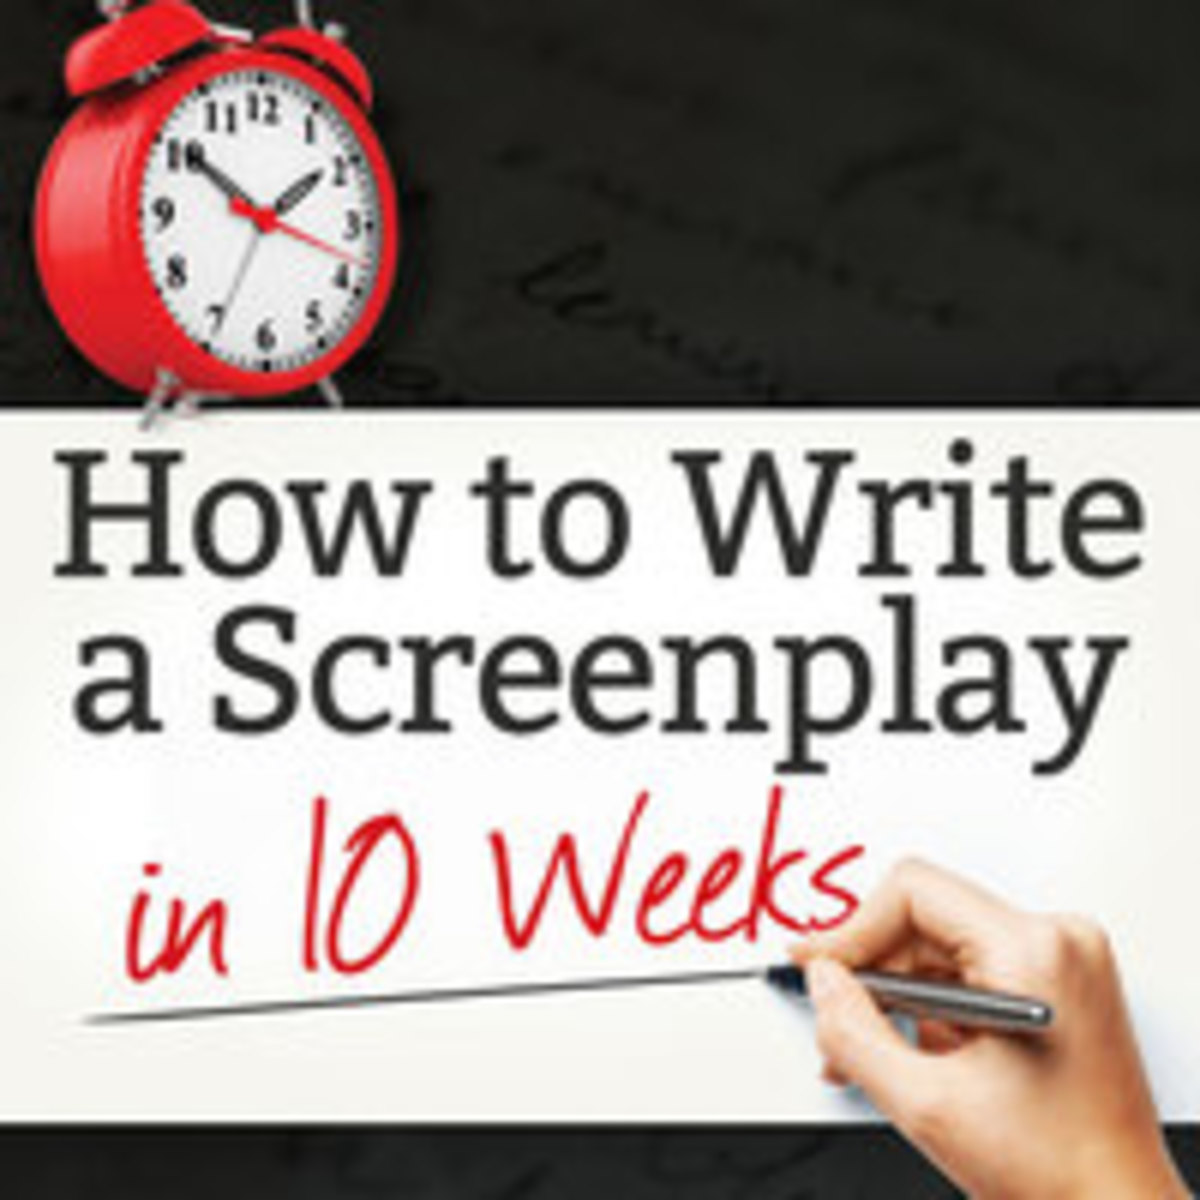 writescreenplay10weeks-500_small